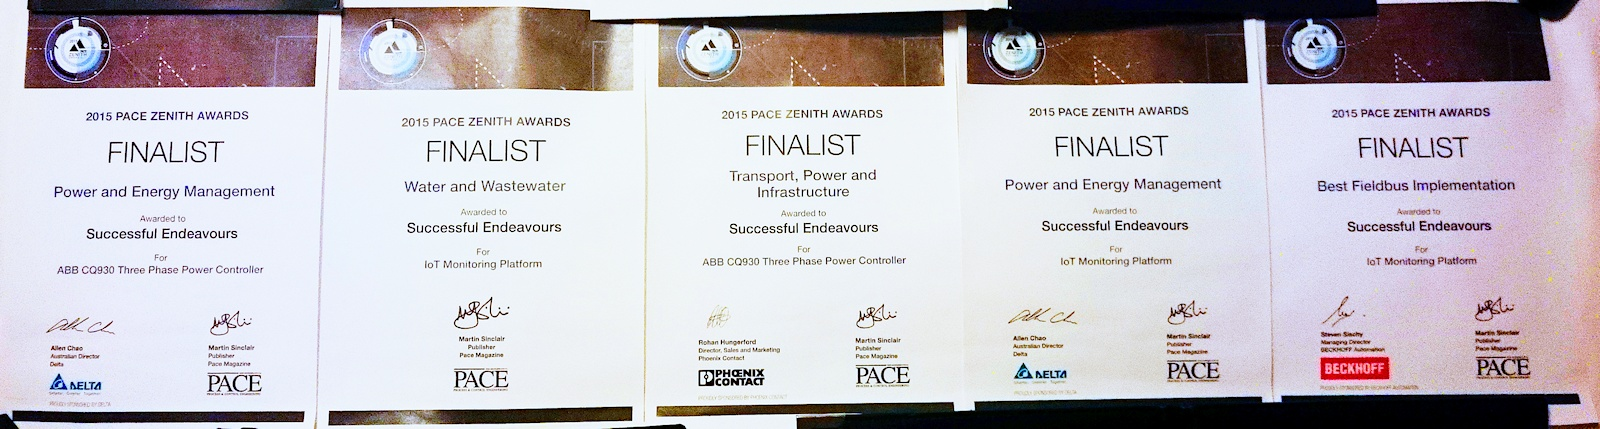 PACE Zenith Awards - 5 Finalist Certificates - Successful Endeavours 2015